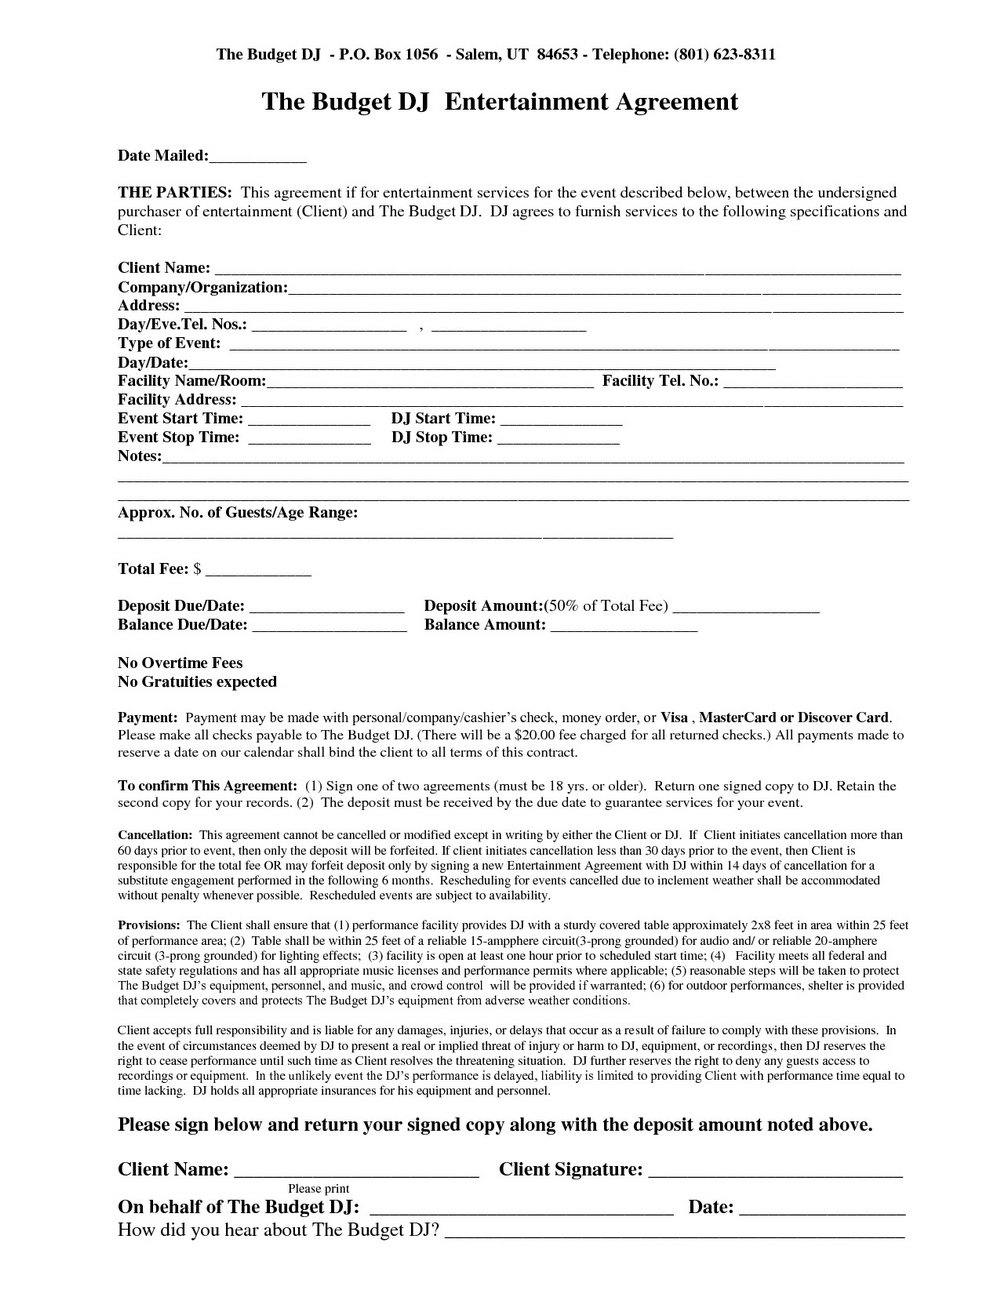 Tops Business Forms Osage Iowa